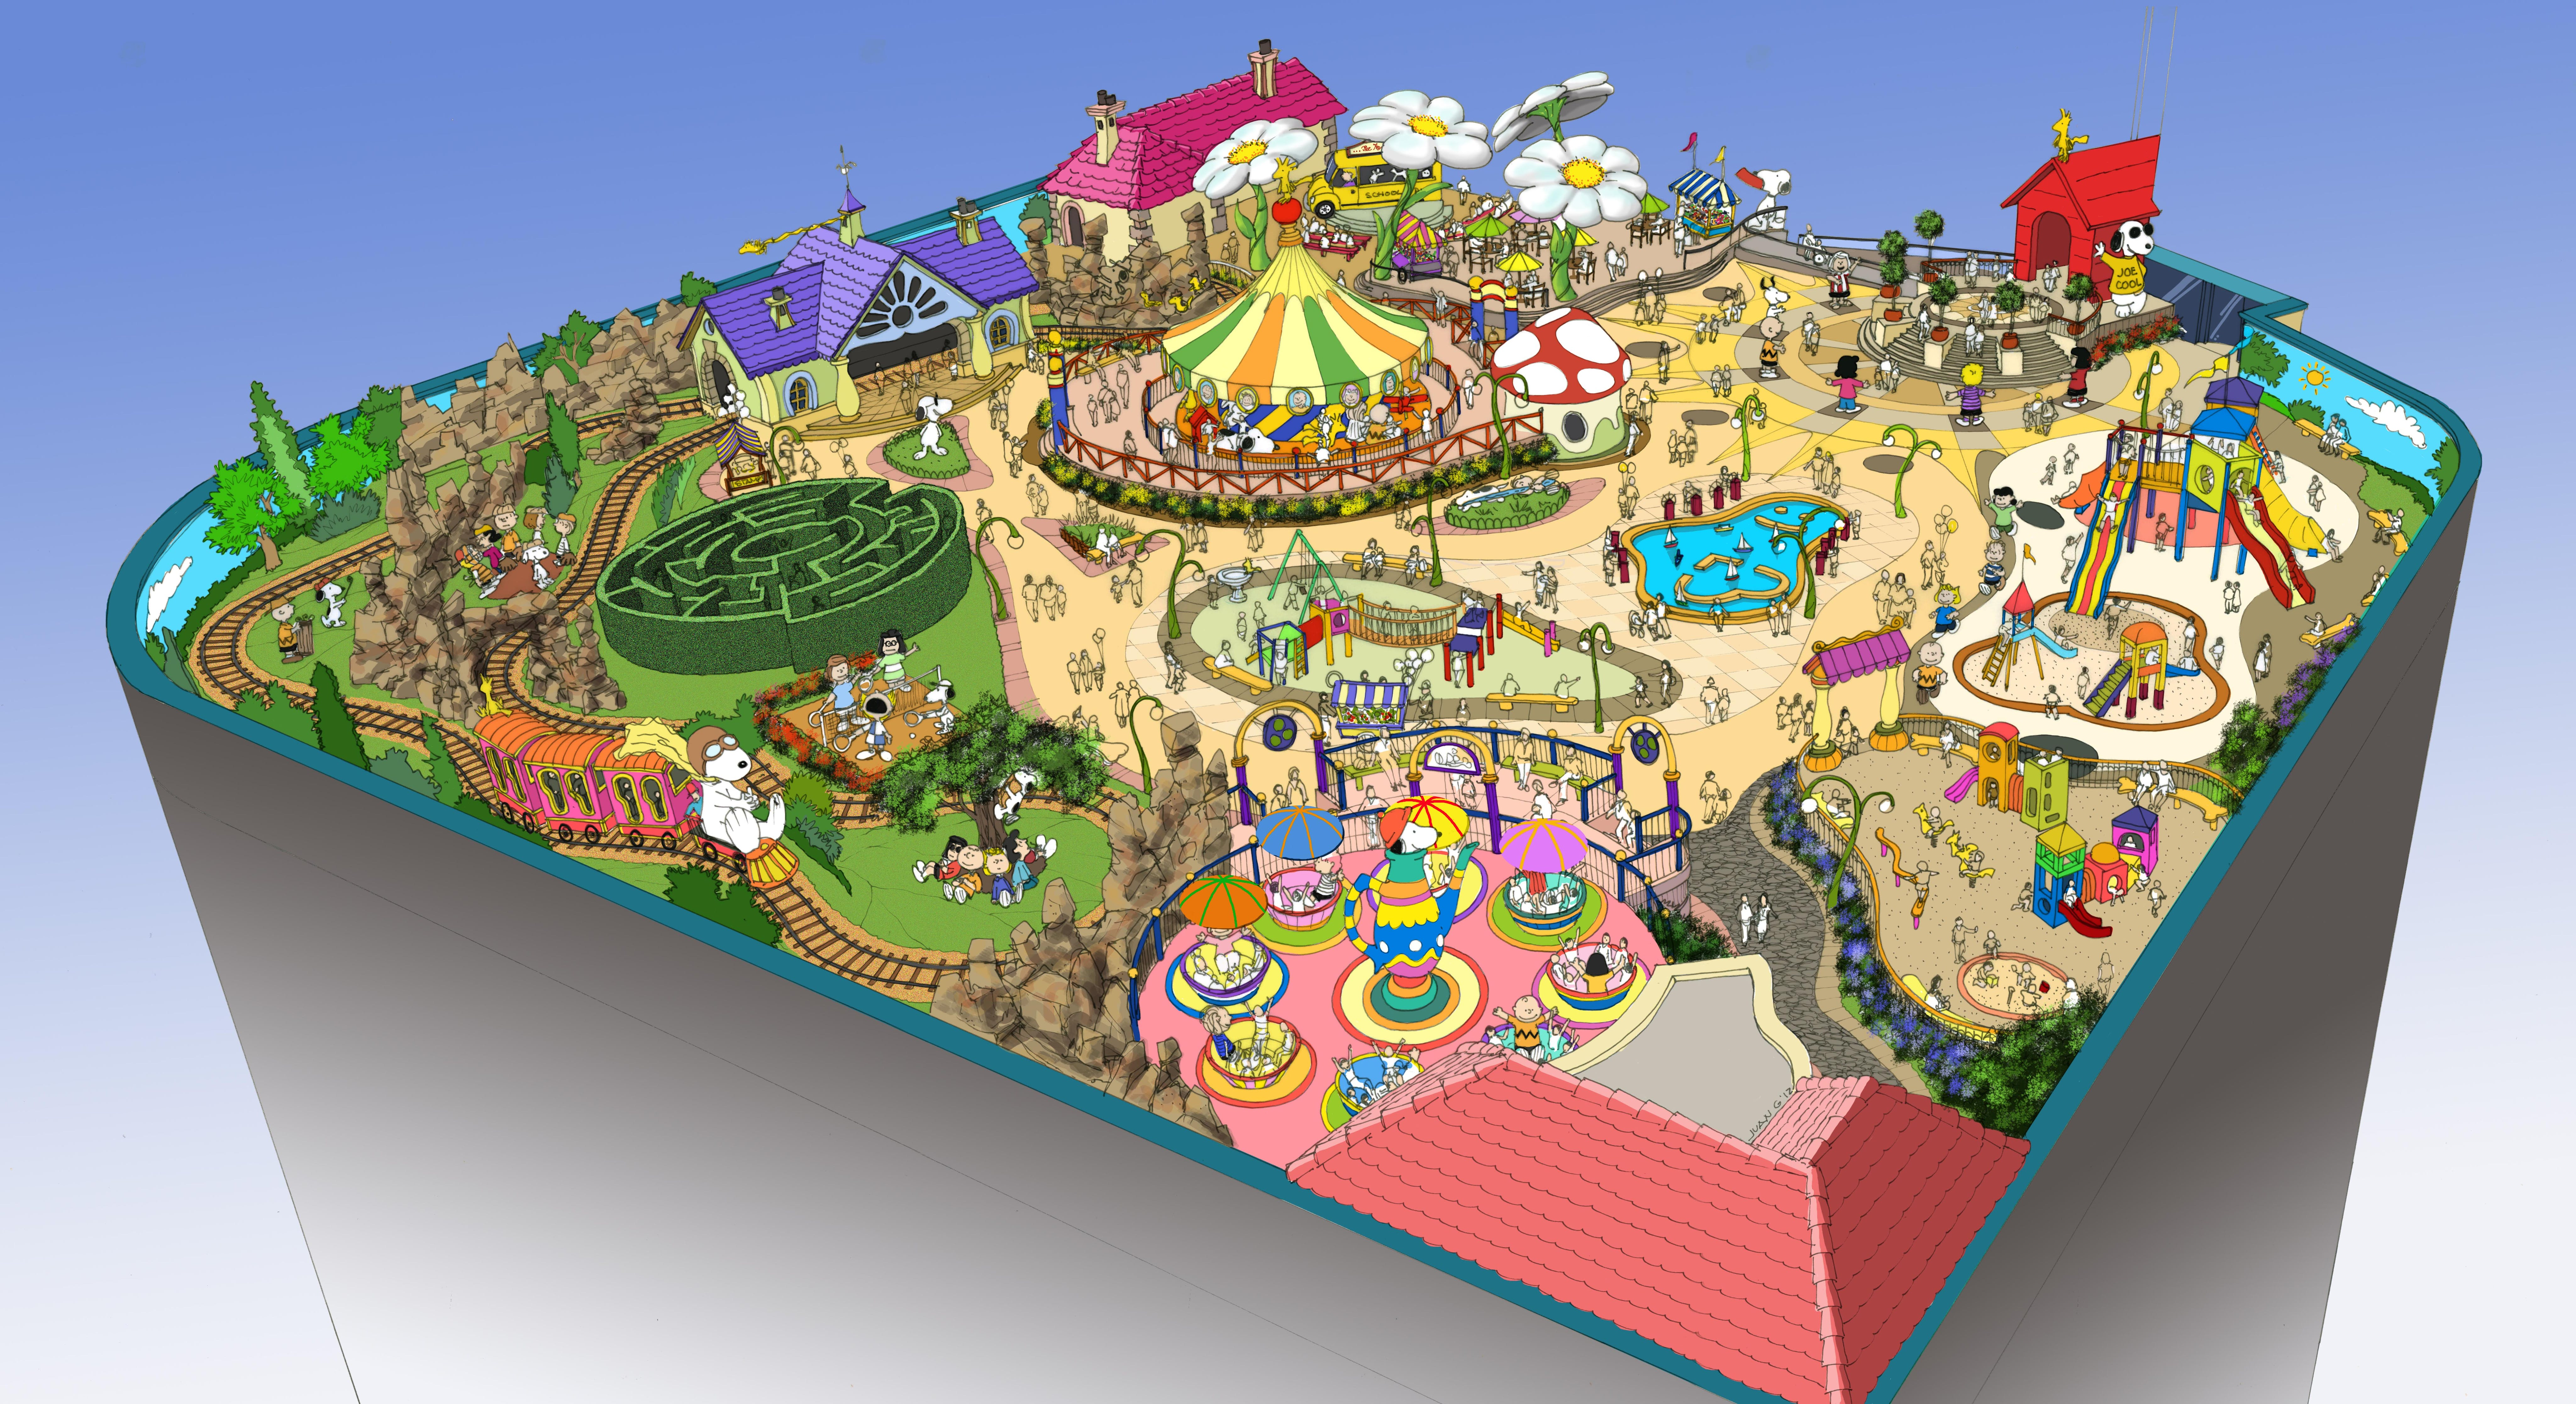 Park Auto Mall >> MCM Wins Competition for Design of Outdoor Snoopy Amusement Park | MCM Group International ...